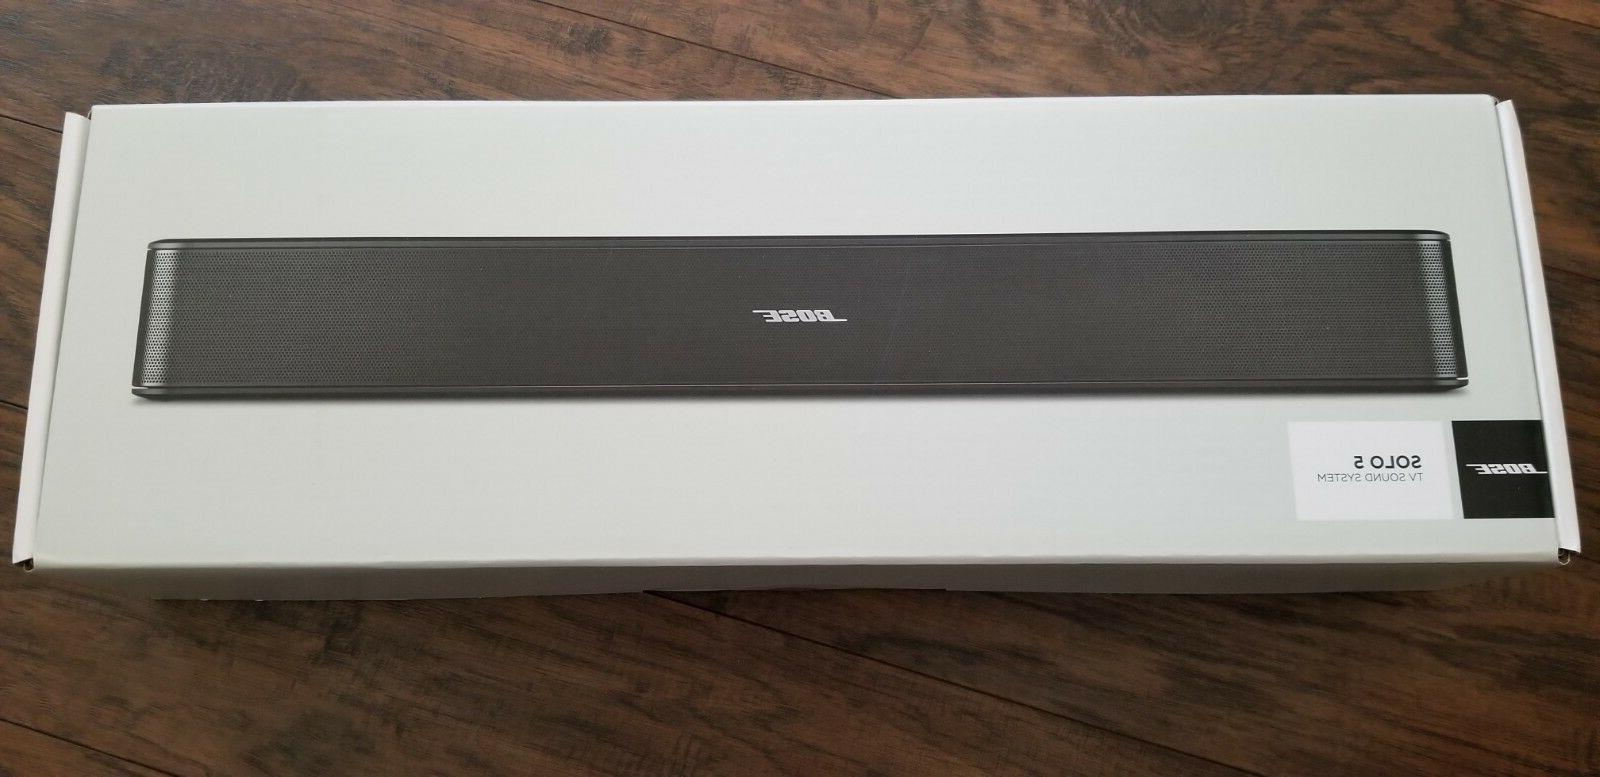 Bose Solo 5 TV sound system Bose Solo 5 Sound Bar 732522-111